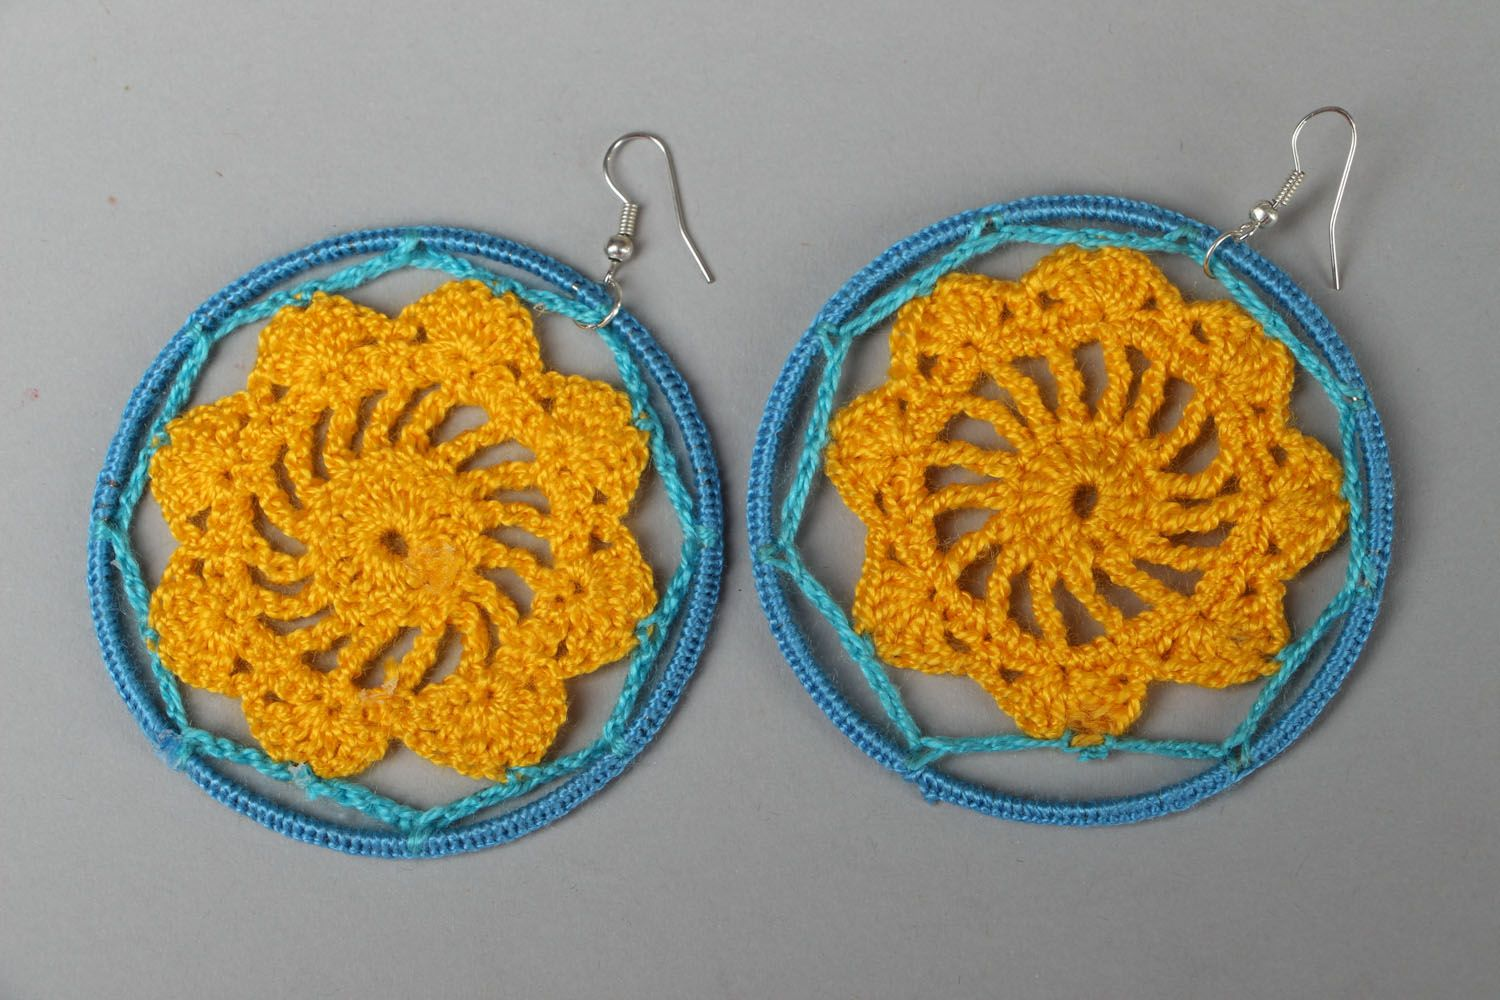 Round crochet earrings Blue and Yellow photo 1